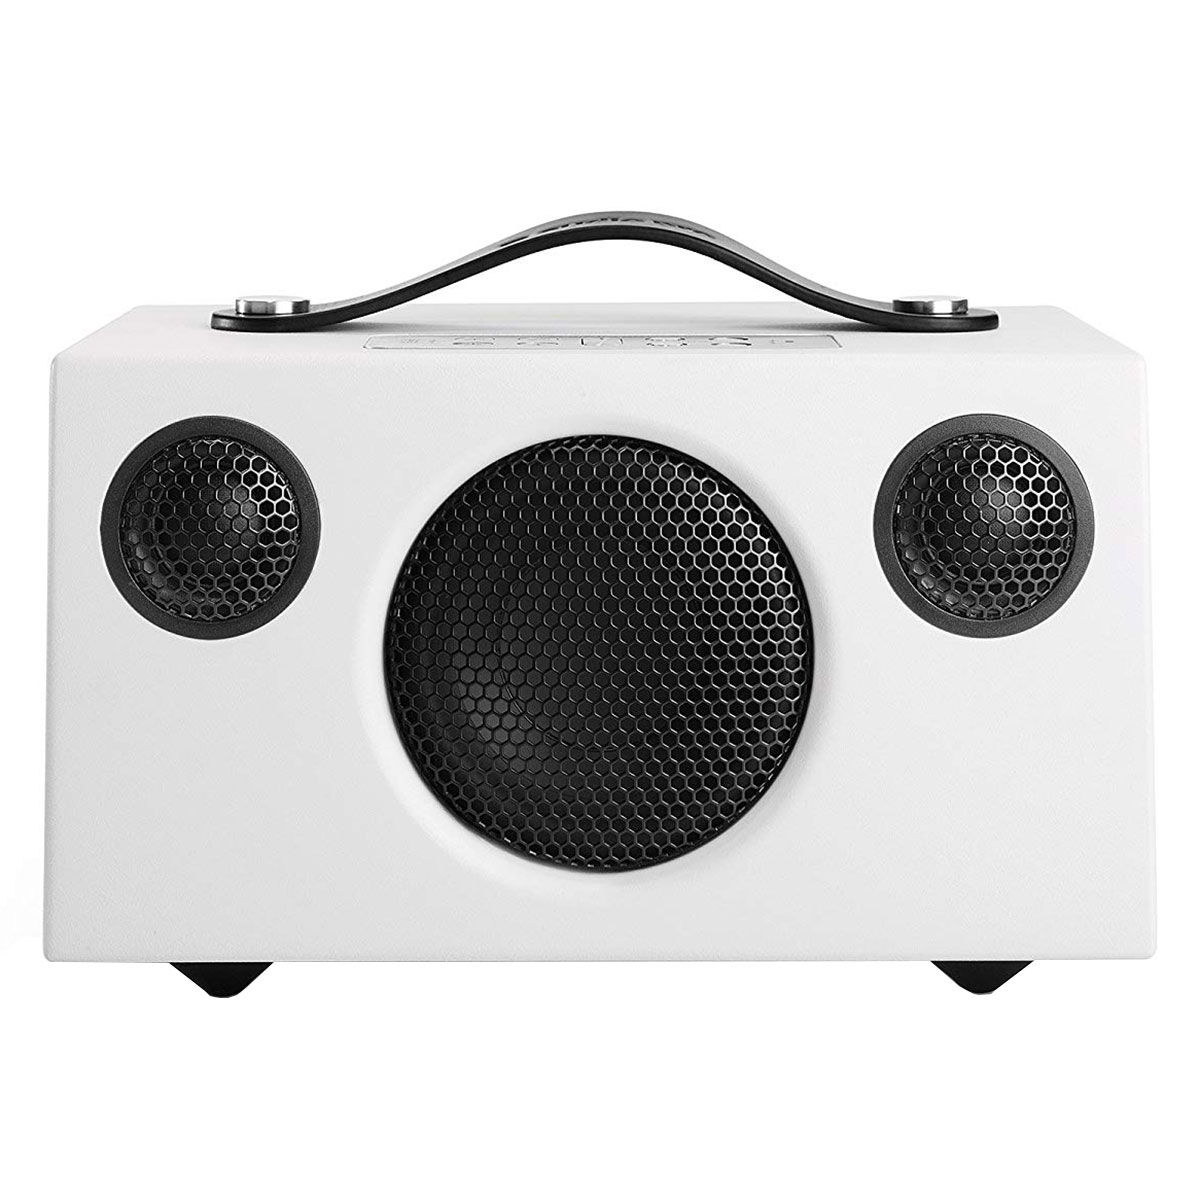 Dock & Enceinte Bluetooth Audio Pro Addon C3 Blanc Enceinte portable sans fil multiroom avec Wi-Fi, Bluetooth, AirPlay et Spotify Connect